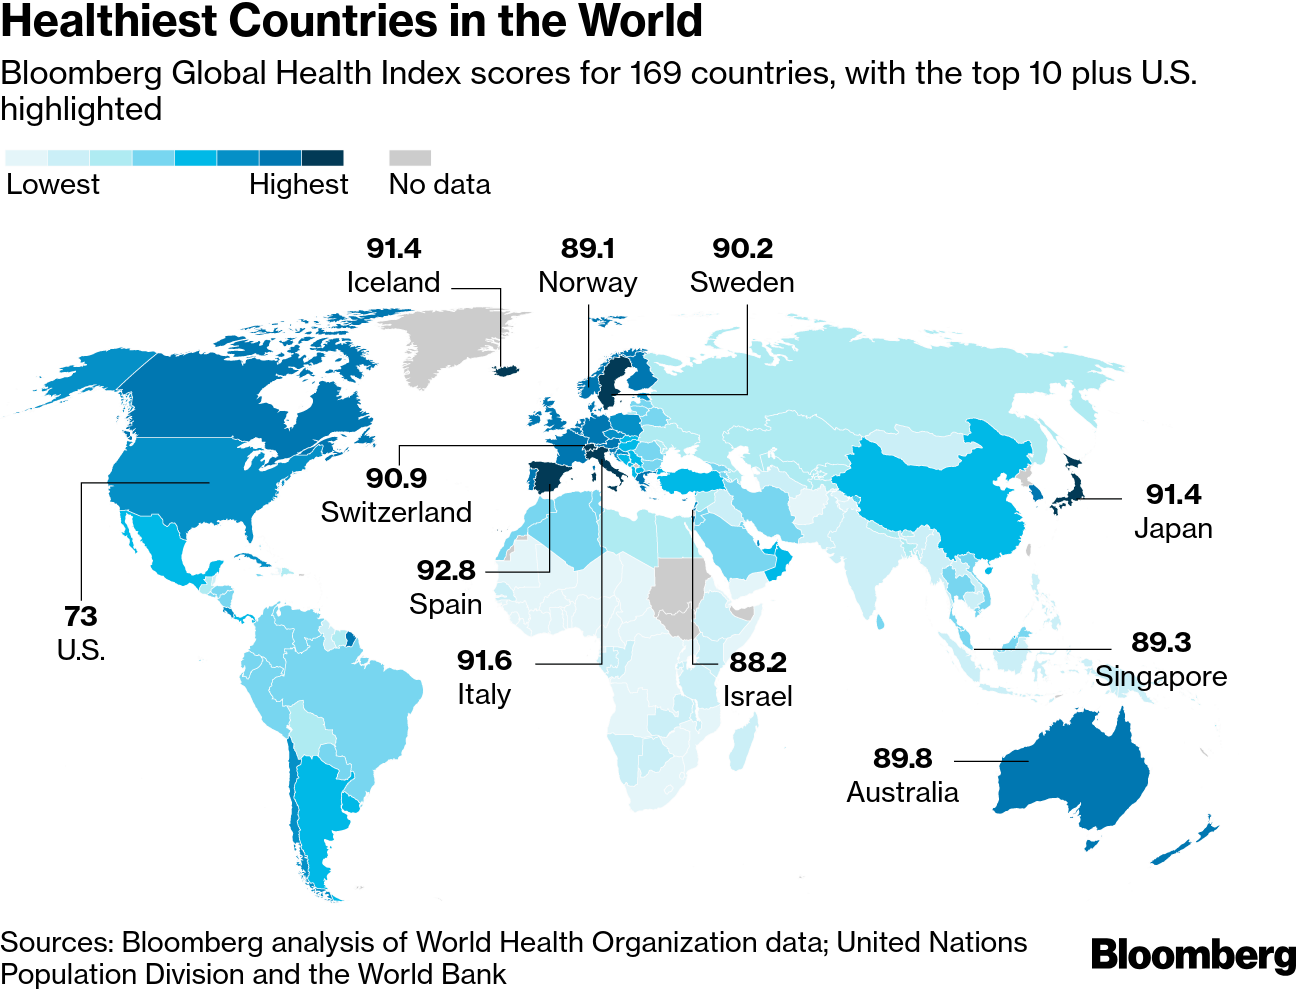 Israel Ranked 10th Healthiest Country in the World